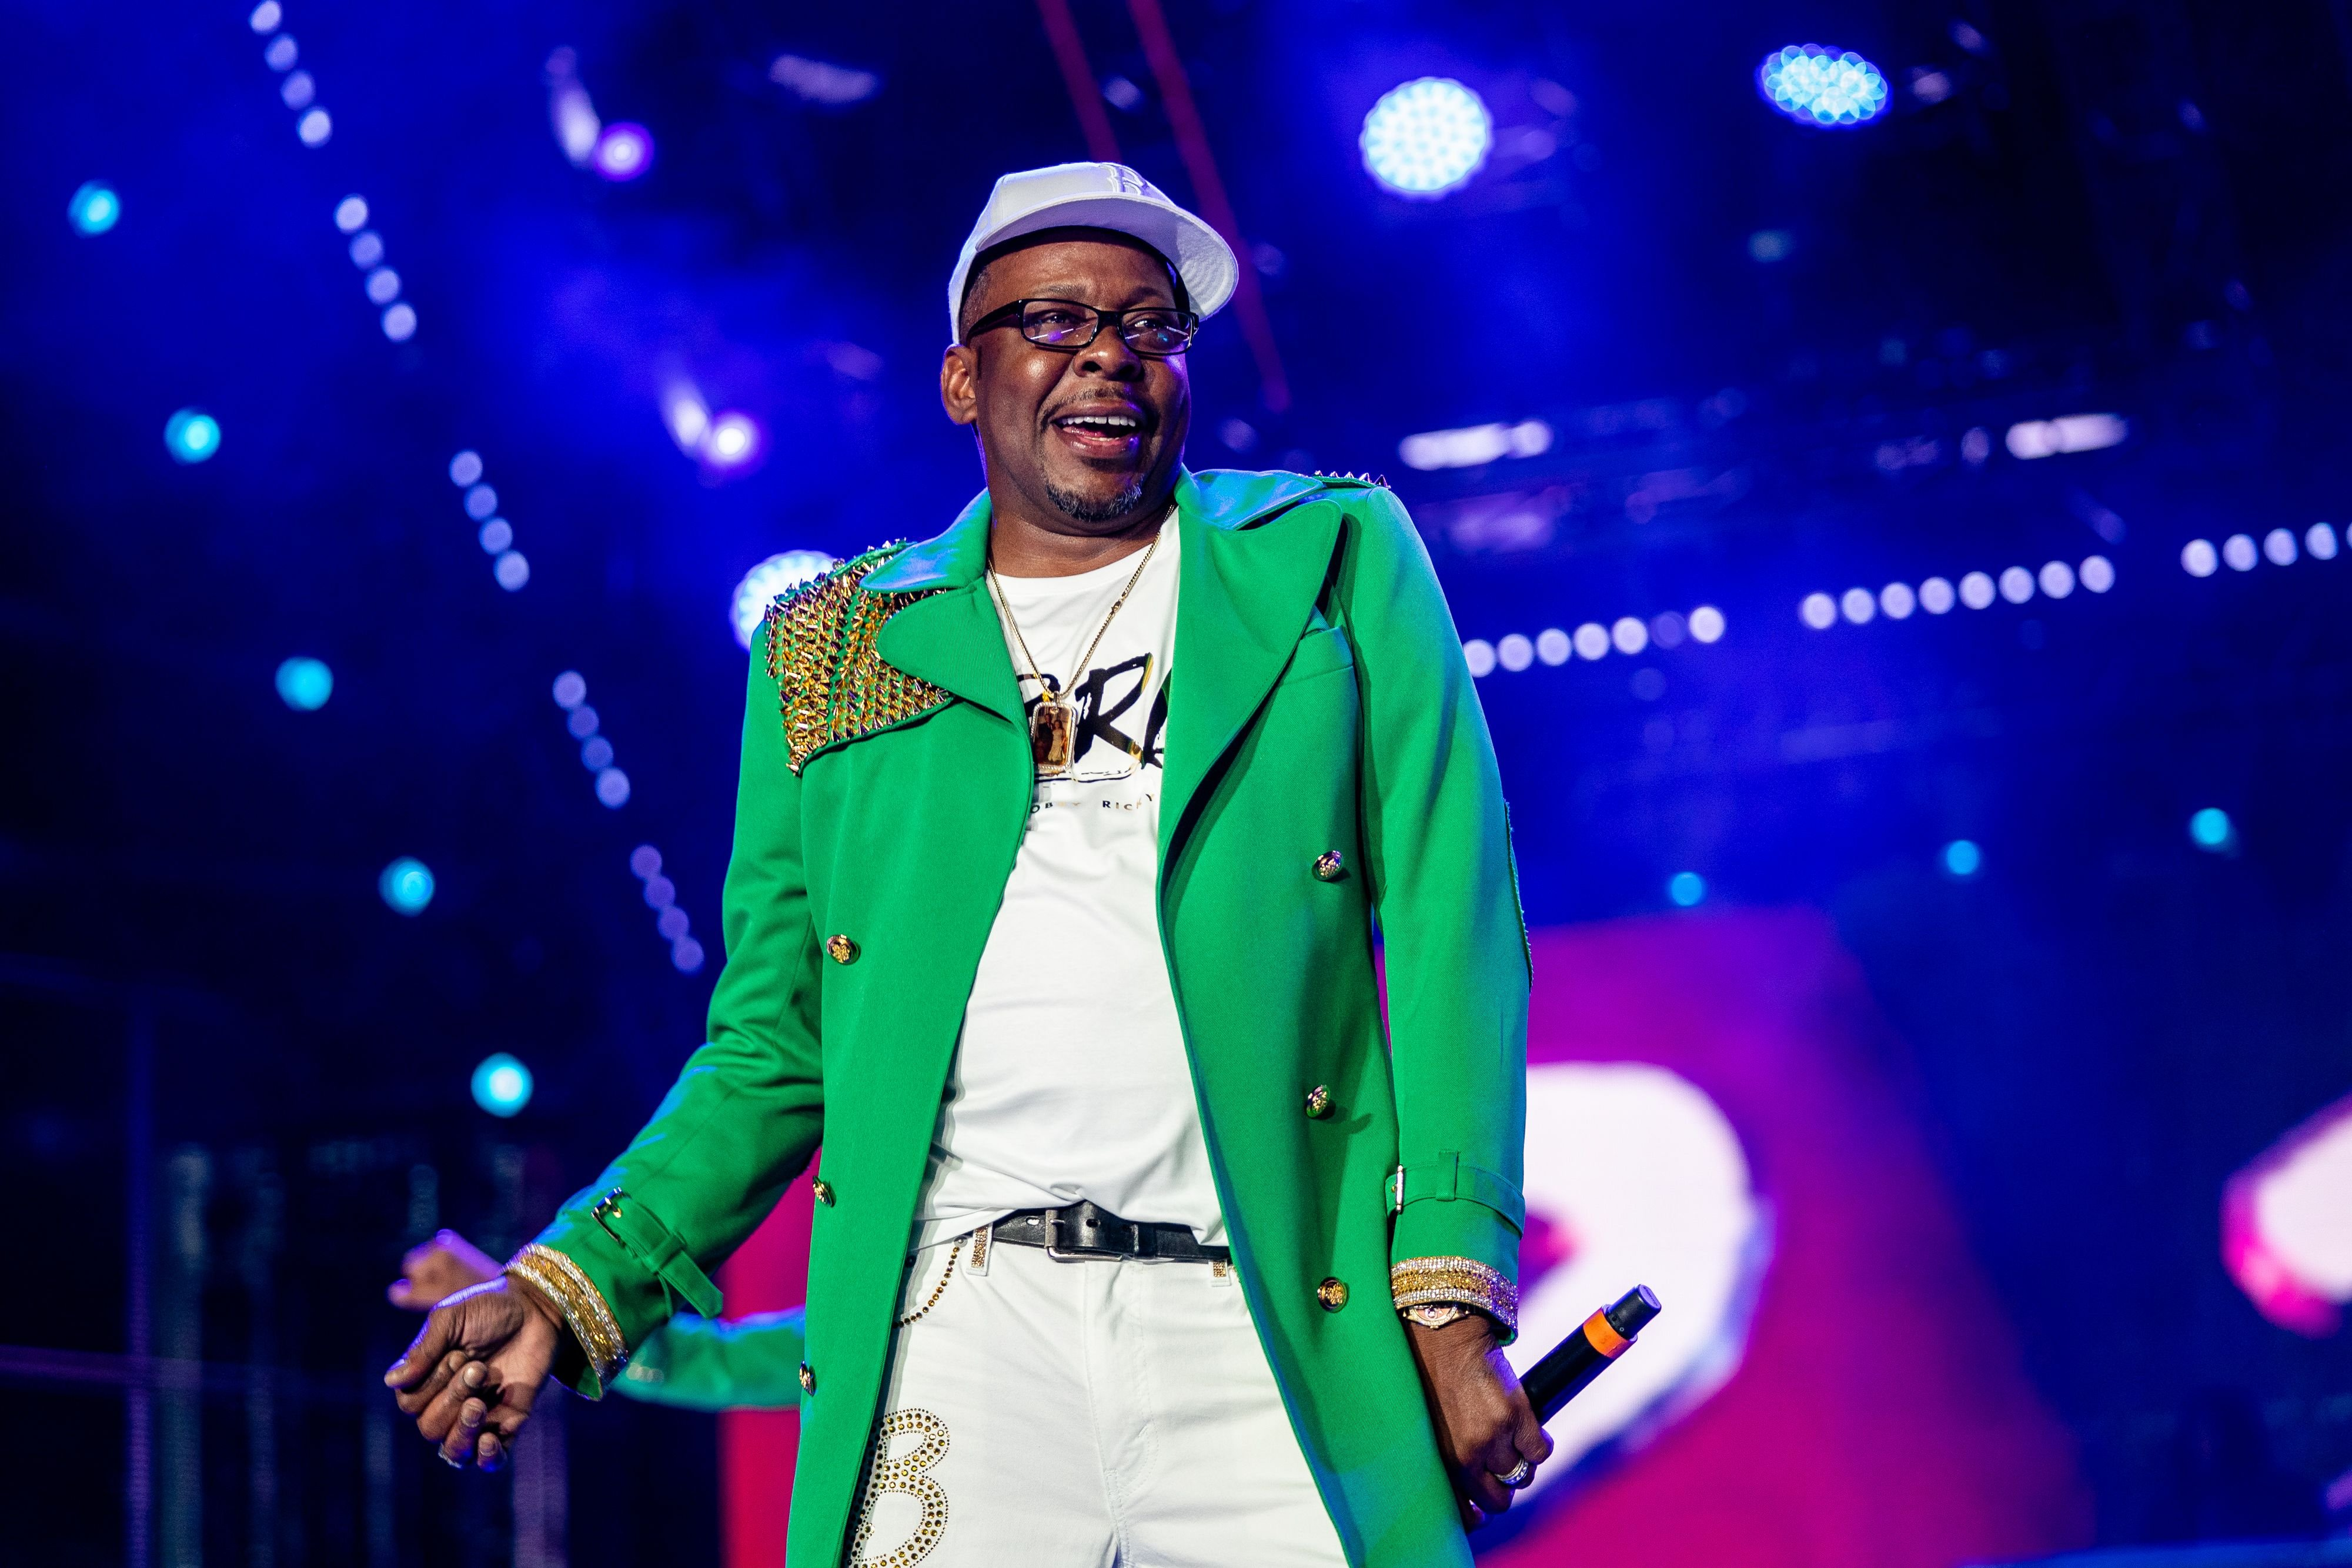 Bobby Brown of RBRM performs during the 25th Essence Festival at the Mercedes-Benz Superdome on July 5, 2019 in New Orleans, Louisiana. | Source: Getty Images